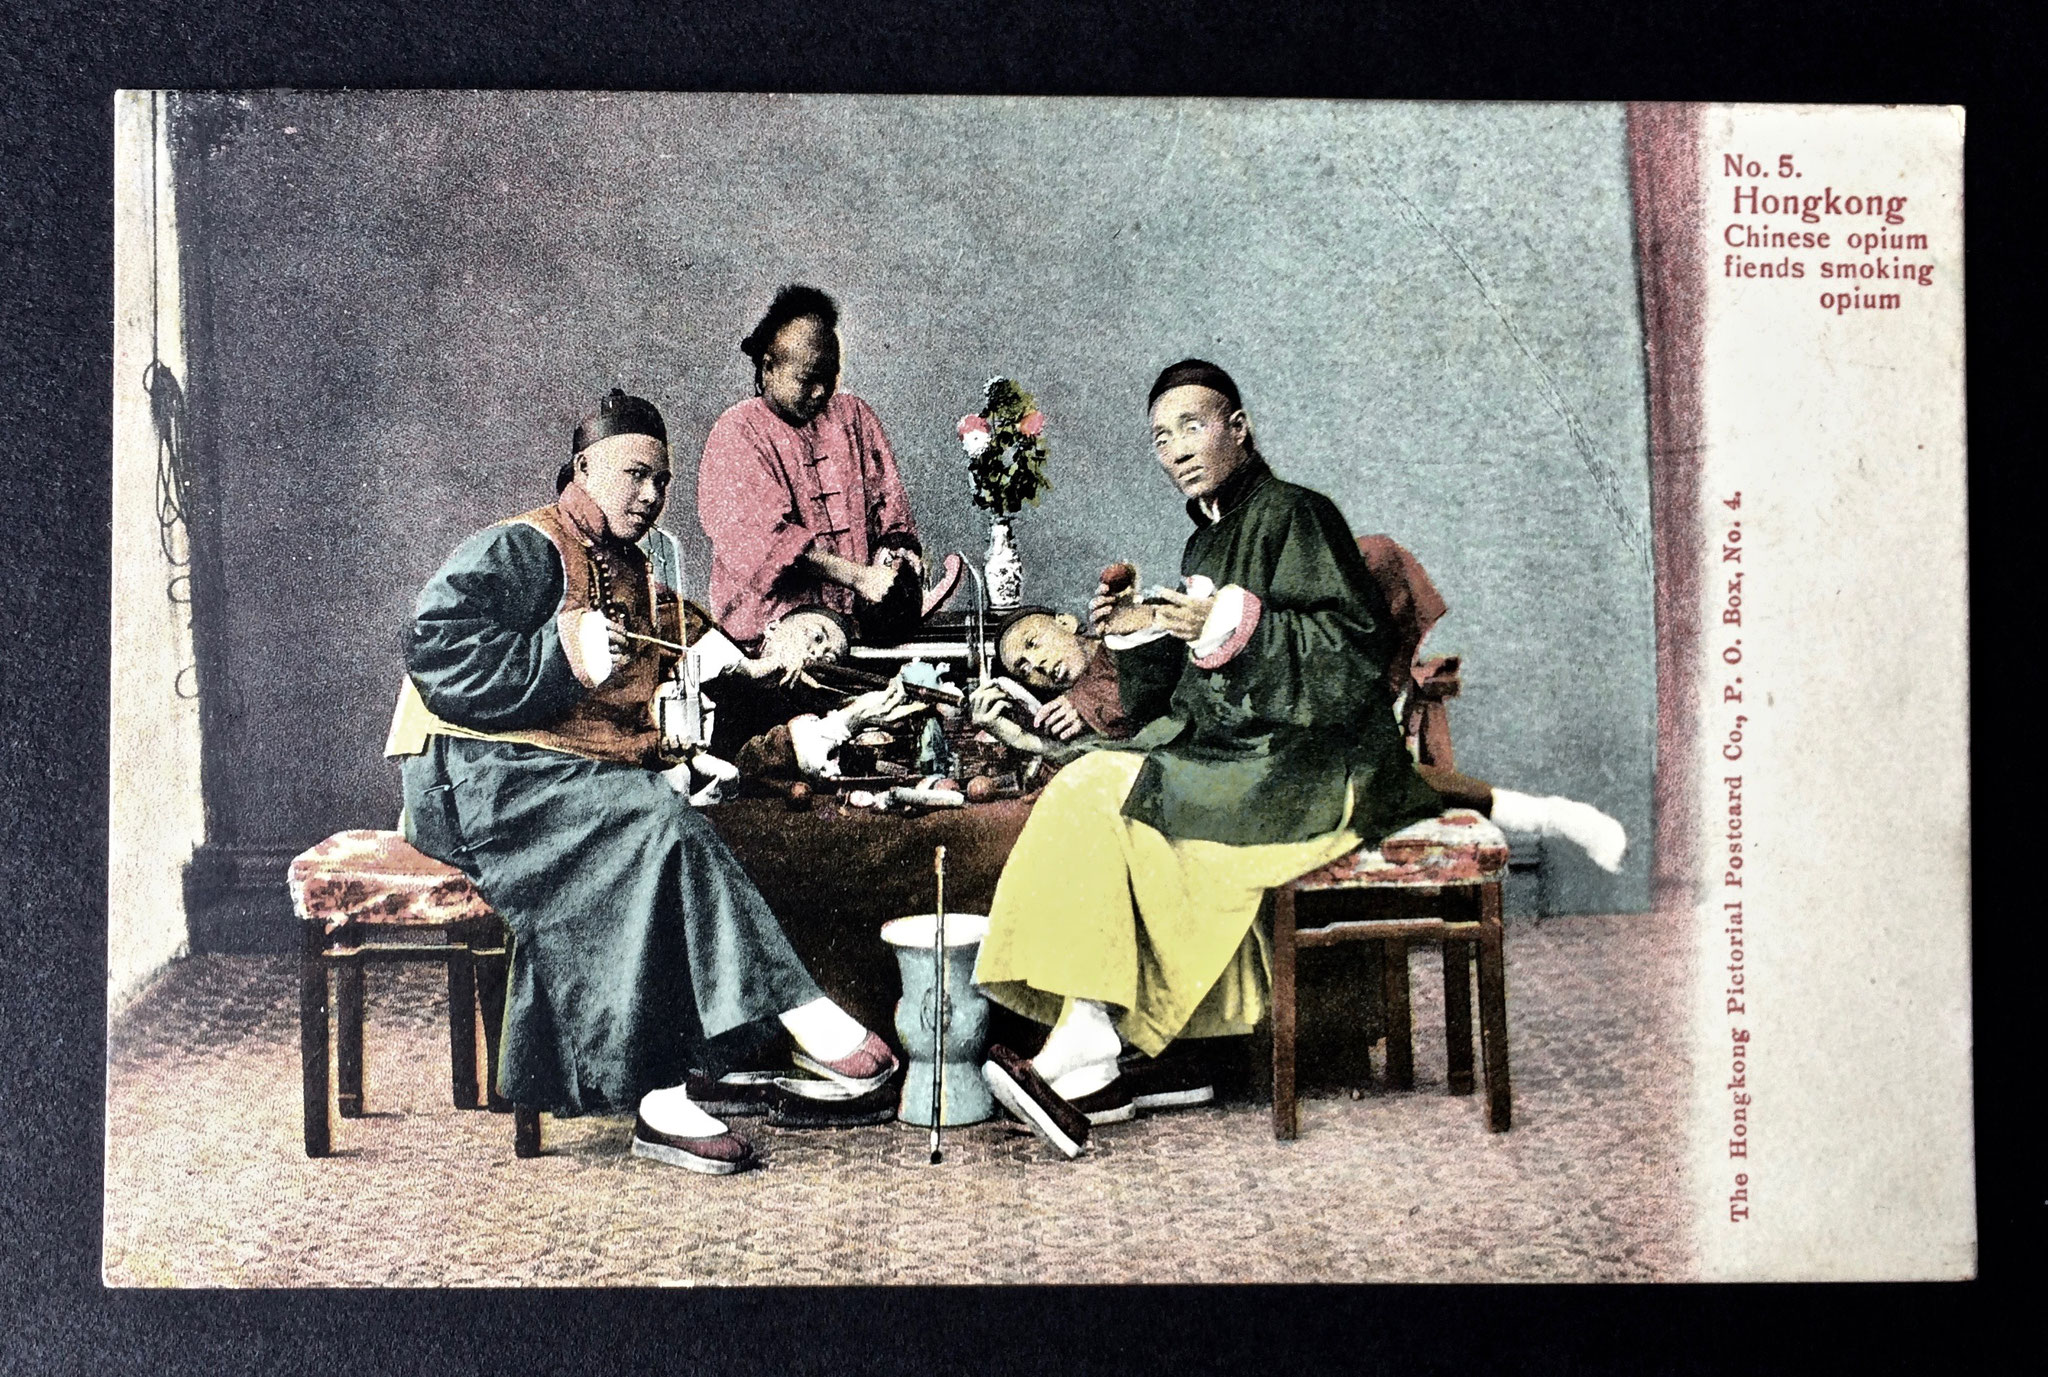 HK opium smokers postcard (–> Books and documents)